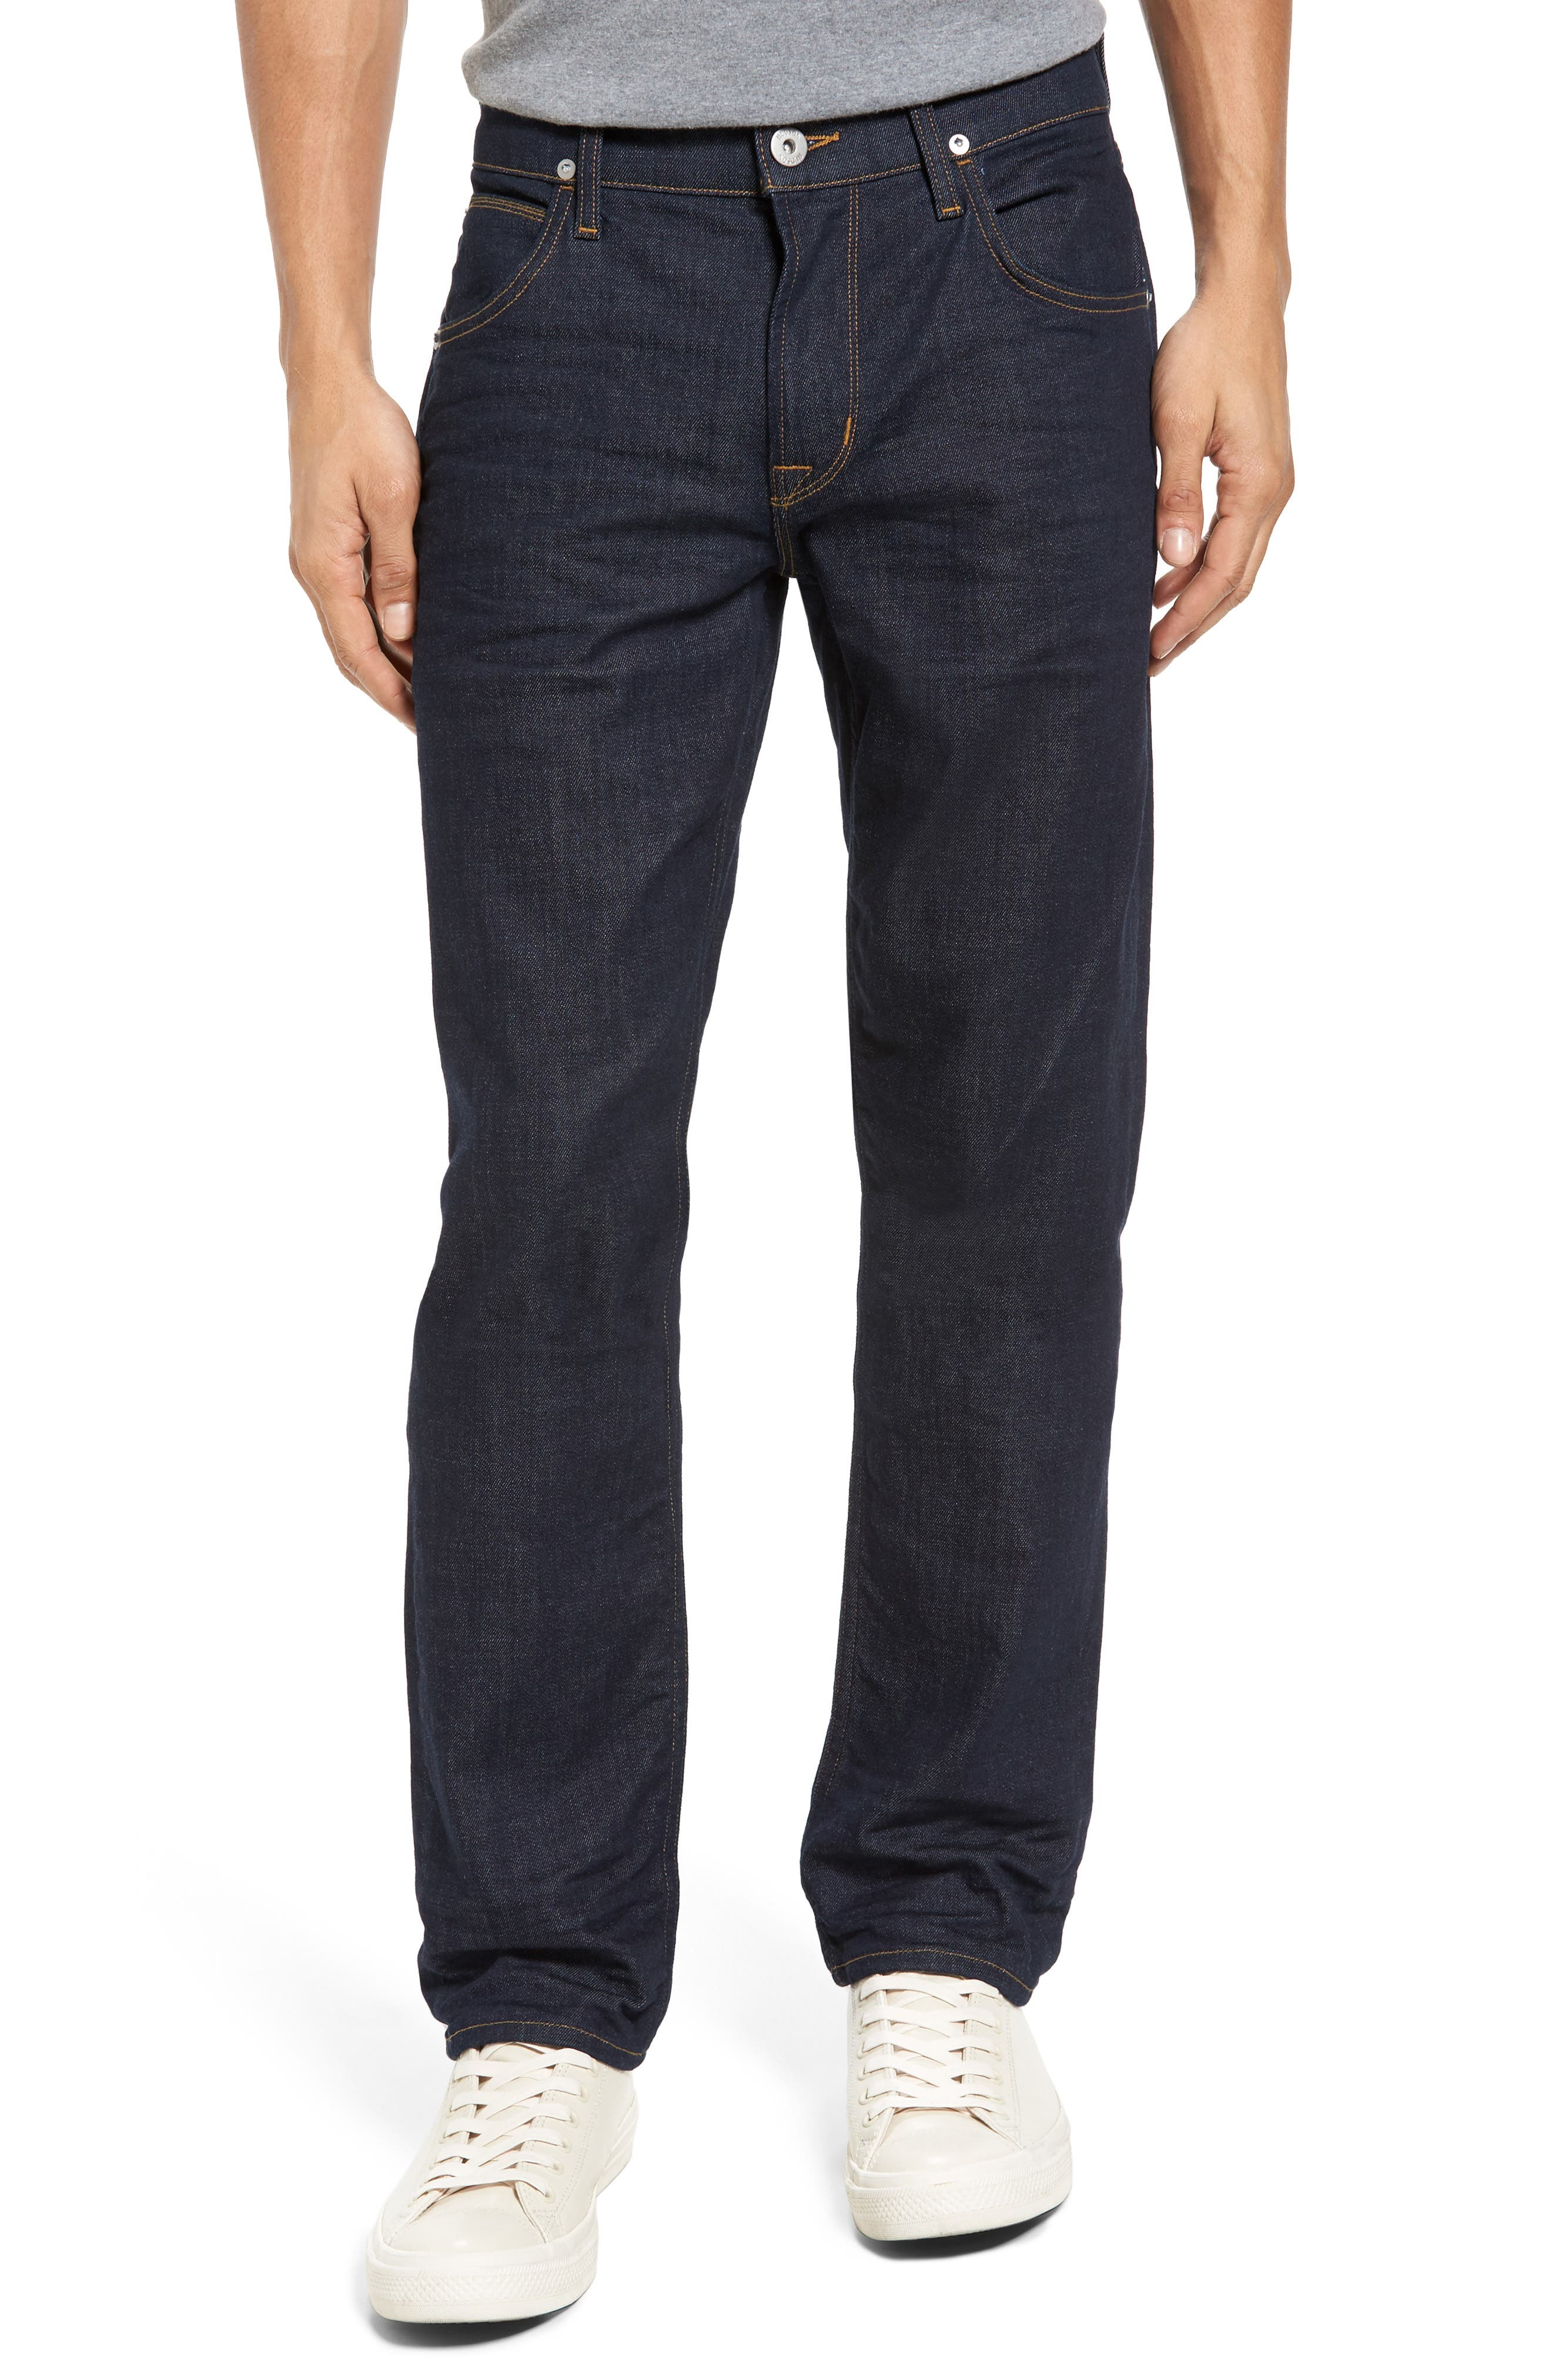 Alternate Image 1 Selected - Hudson Jeans Blake Slim Fit Jeans (Anonymous)